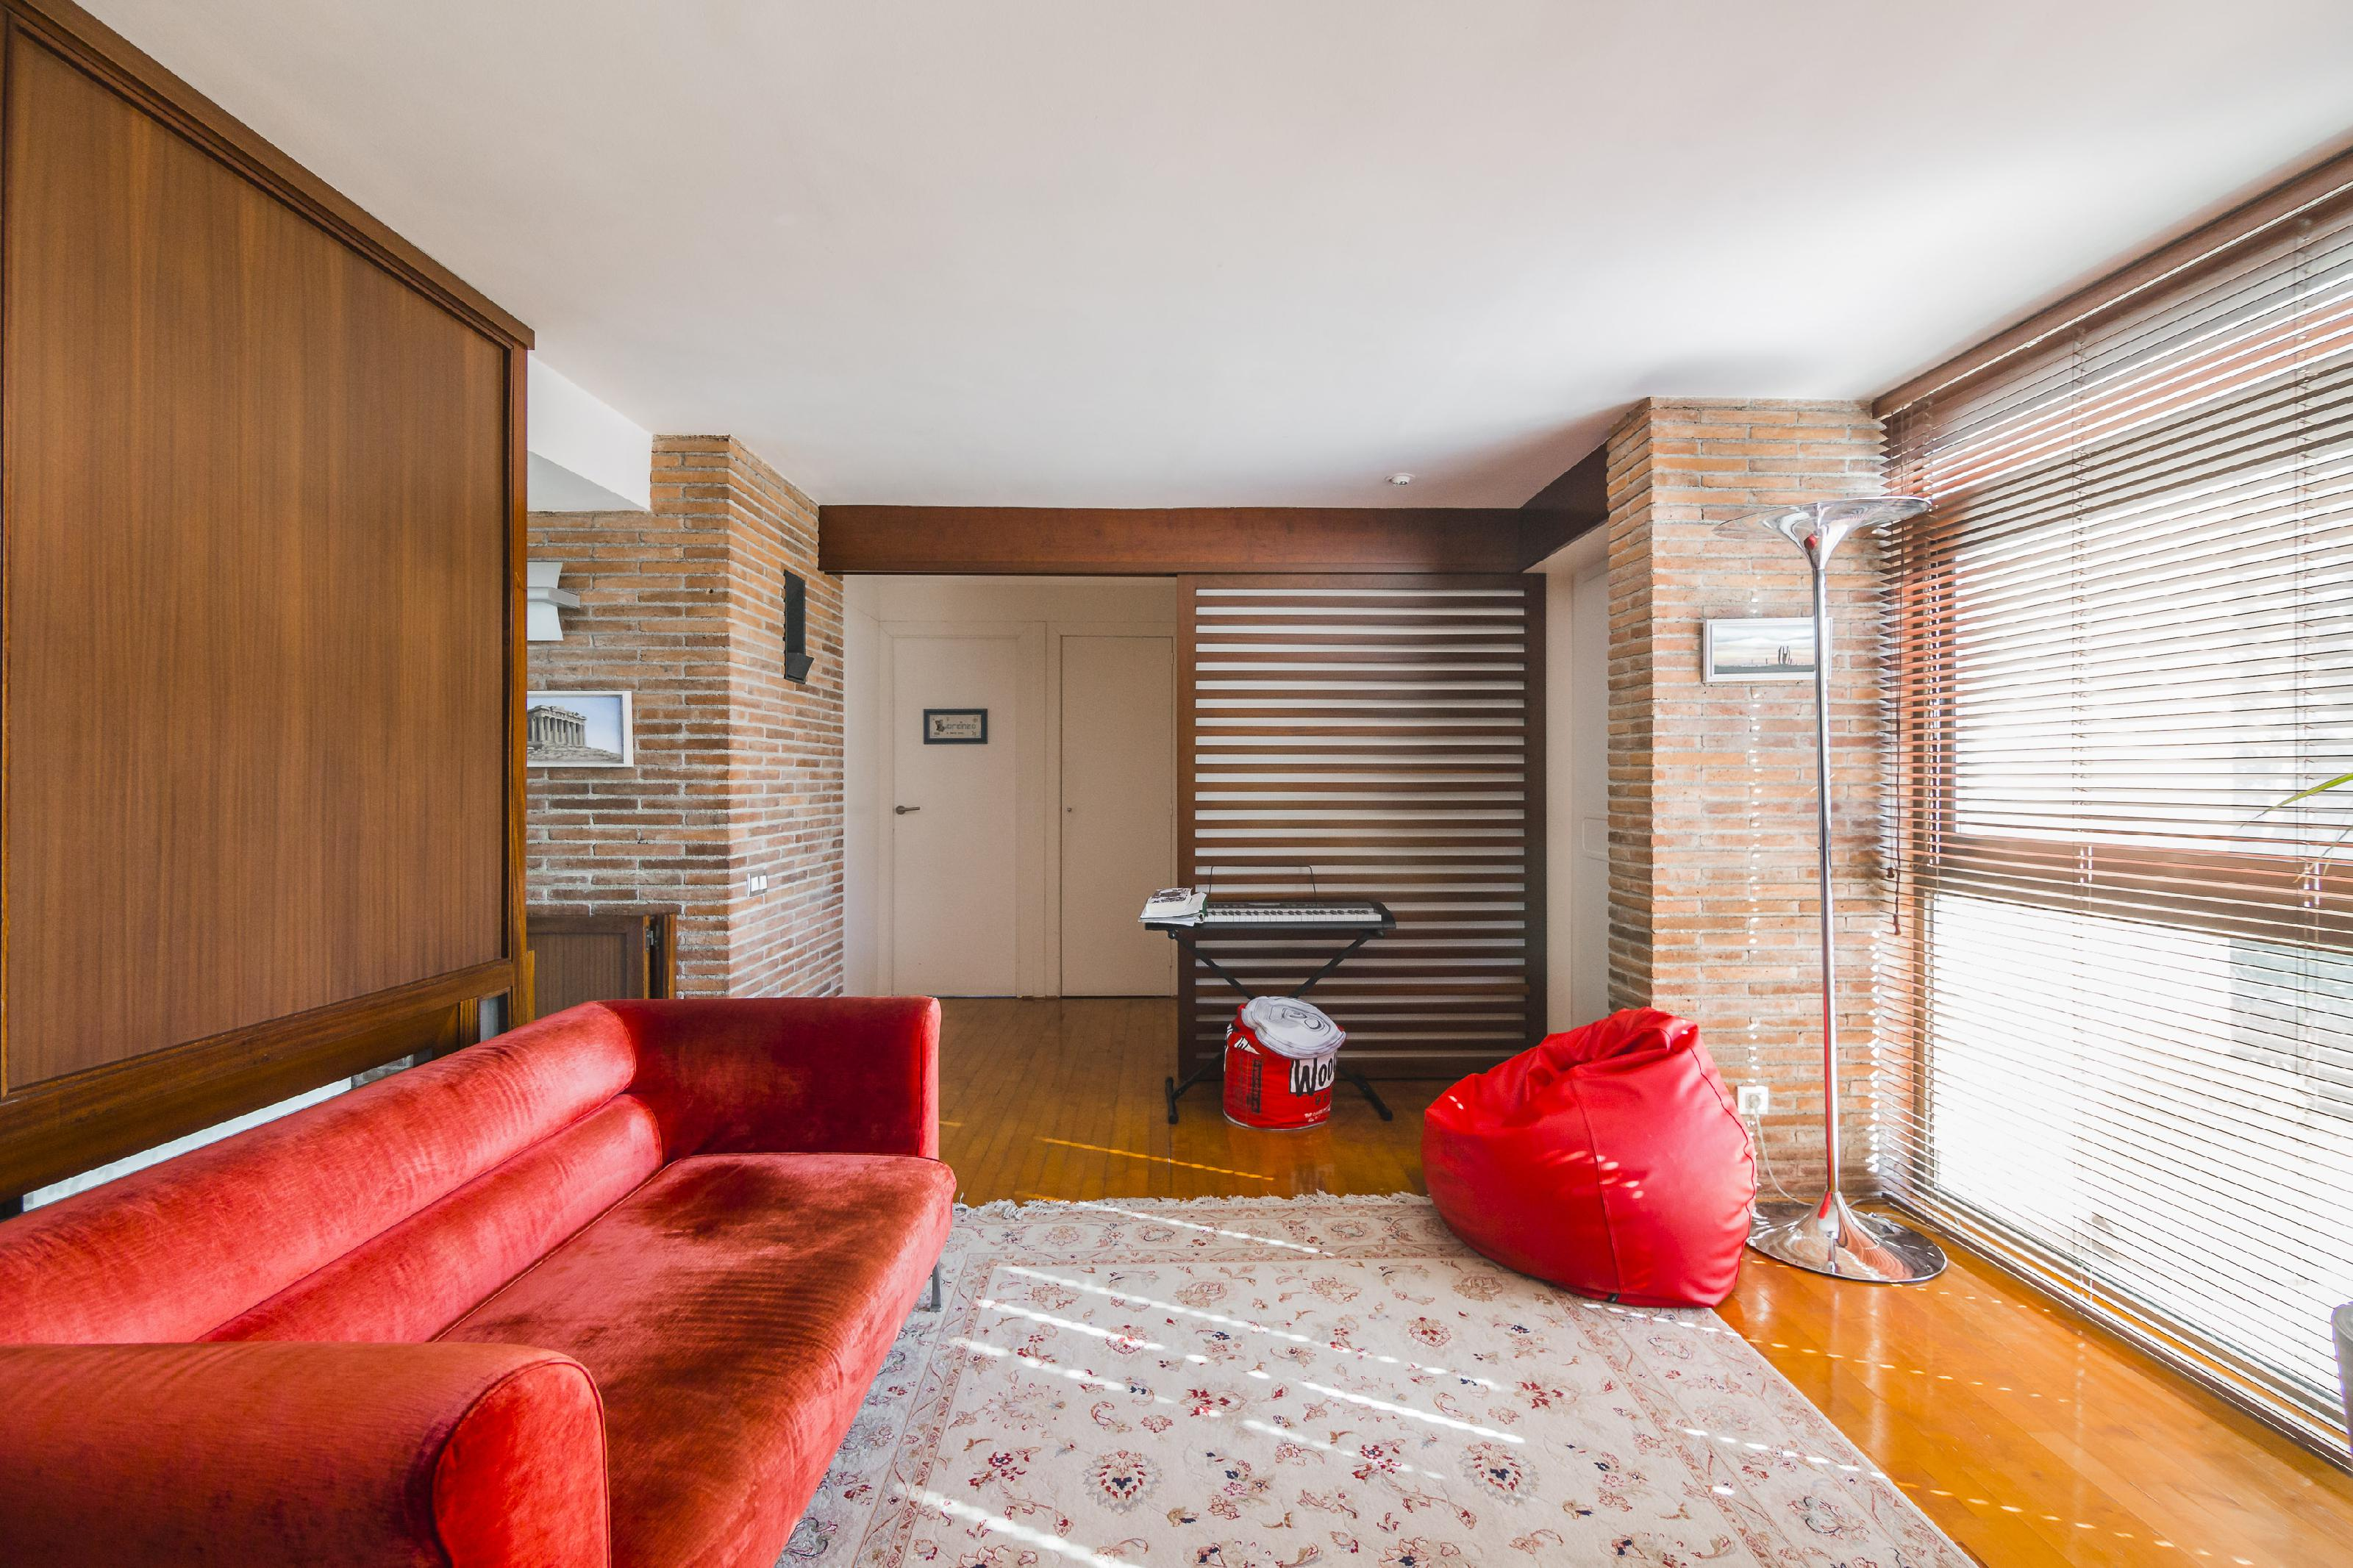 121070 Secluded House for sale in Les Corts, Pedralbes 15